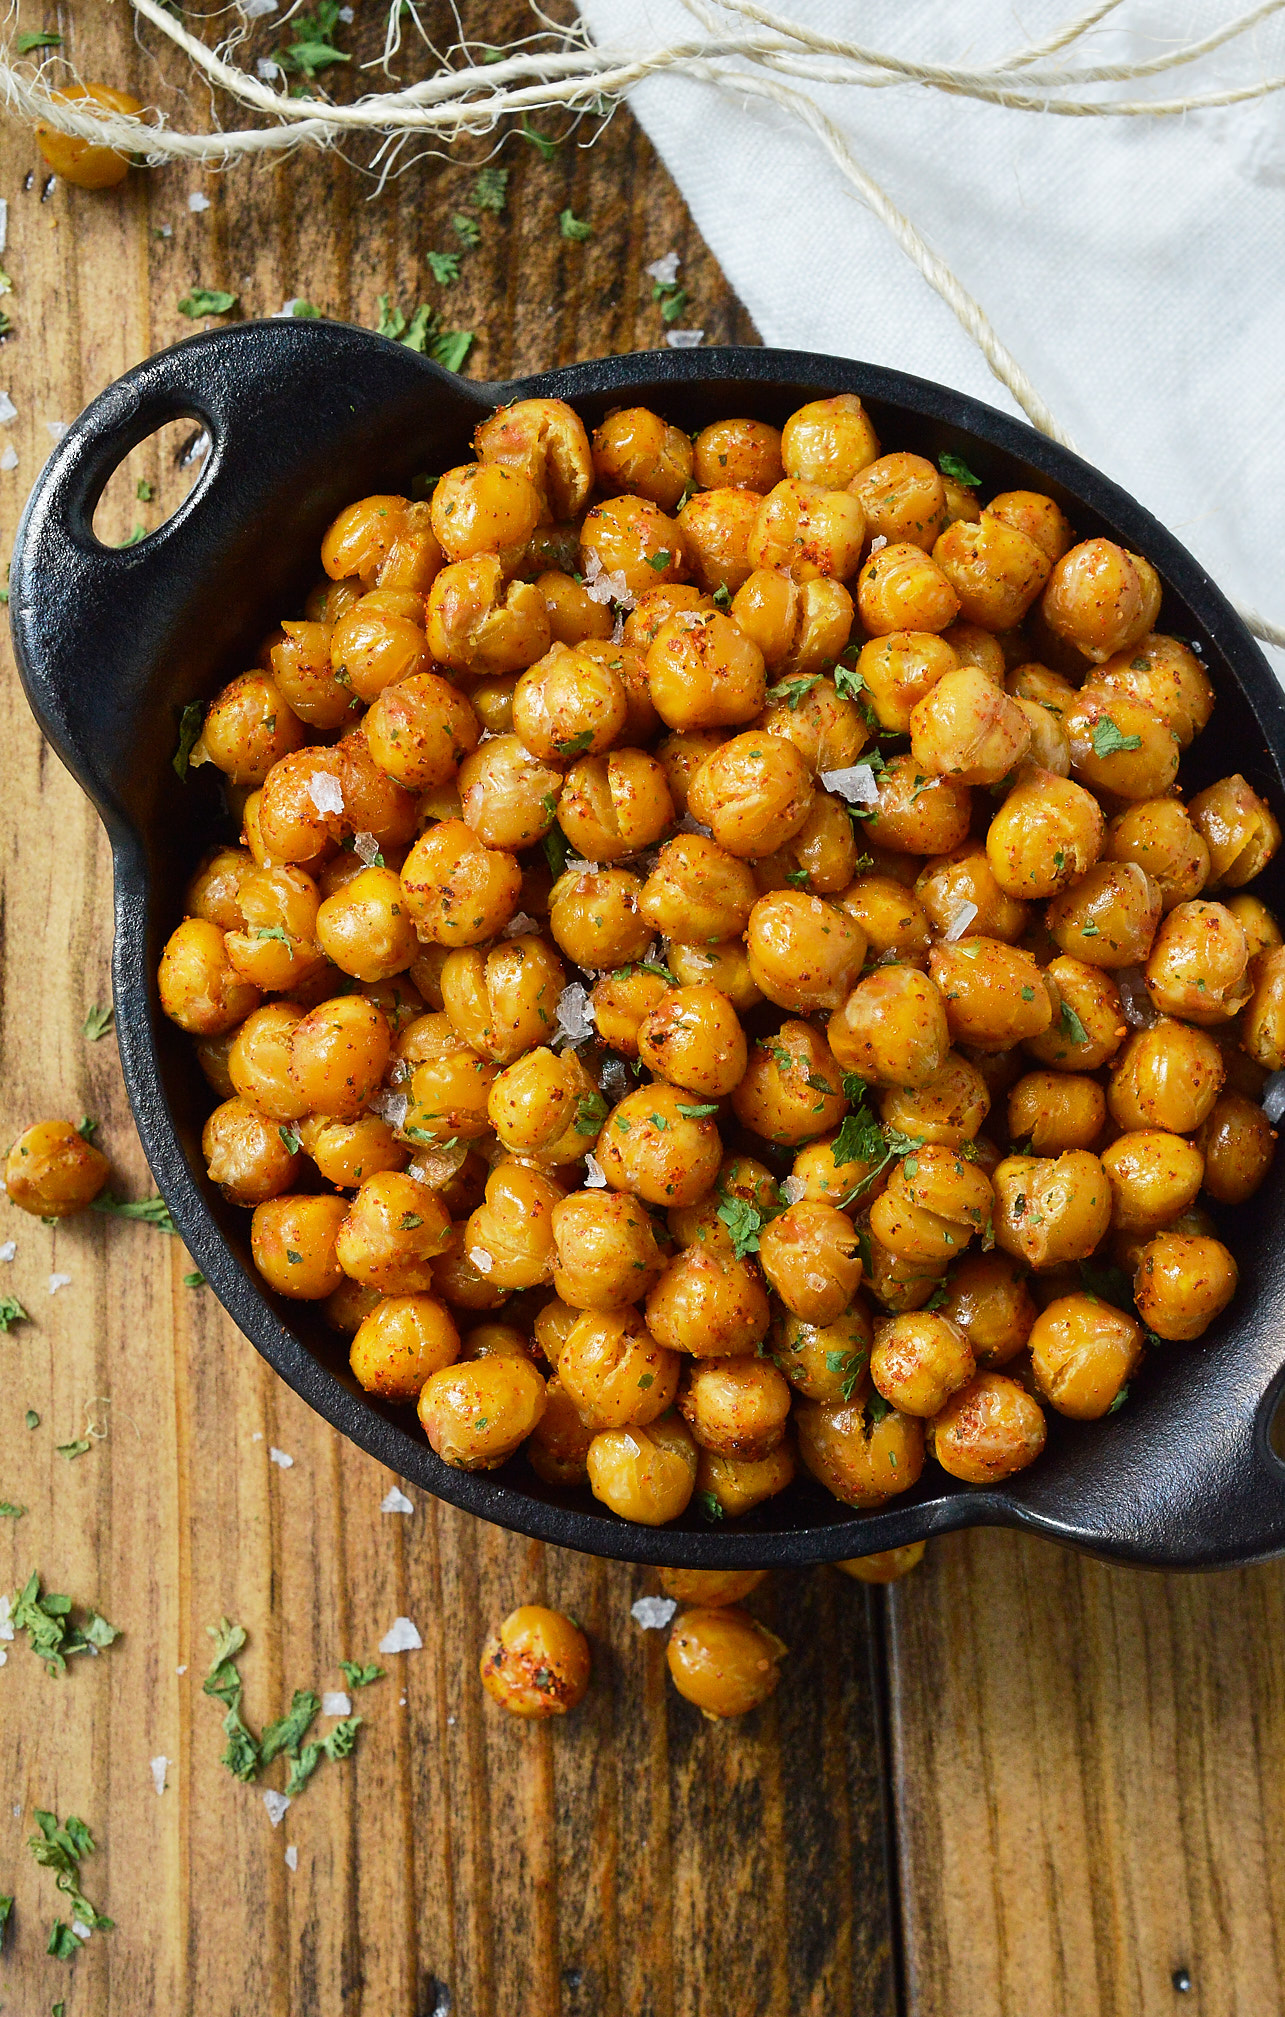 If you're looking for a healthy snack to satisfy that salty, crunchy craving, these Crispy Roasted Chickpeas are it! Learn how to toast chickpeas in the oven making them a nutritious high protein snack recipe. vegan, vegetarian